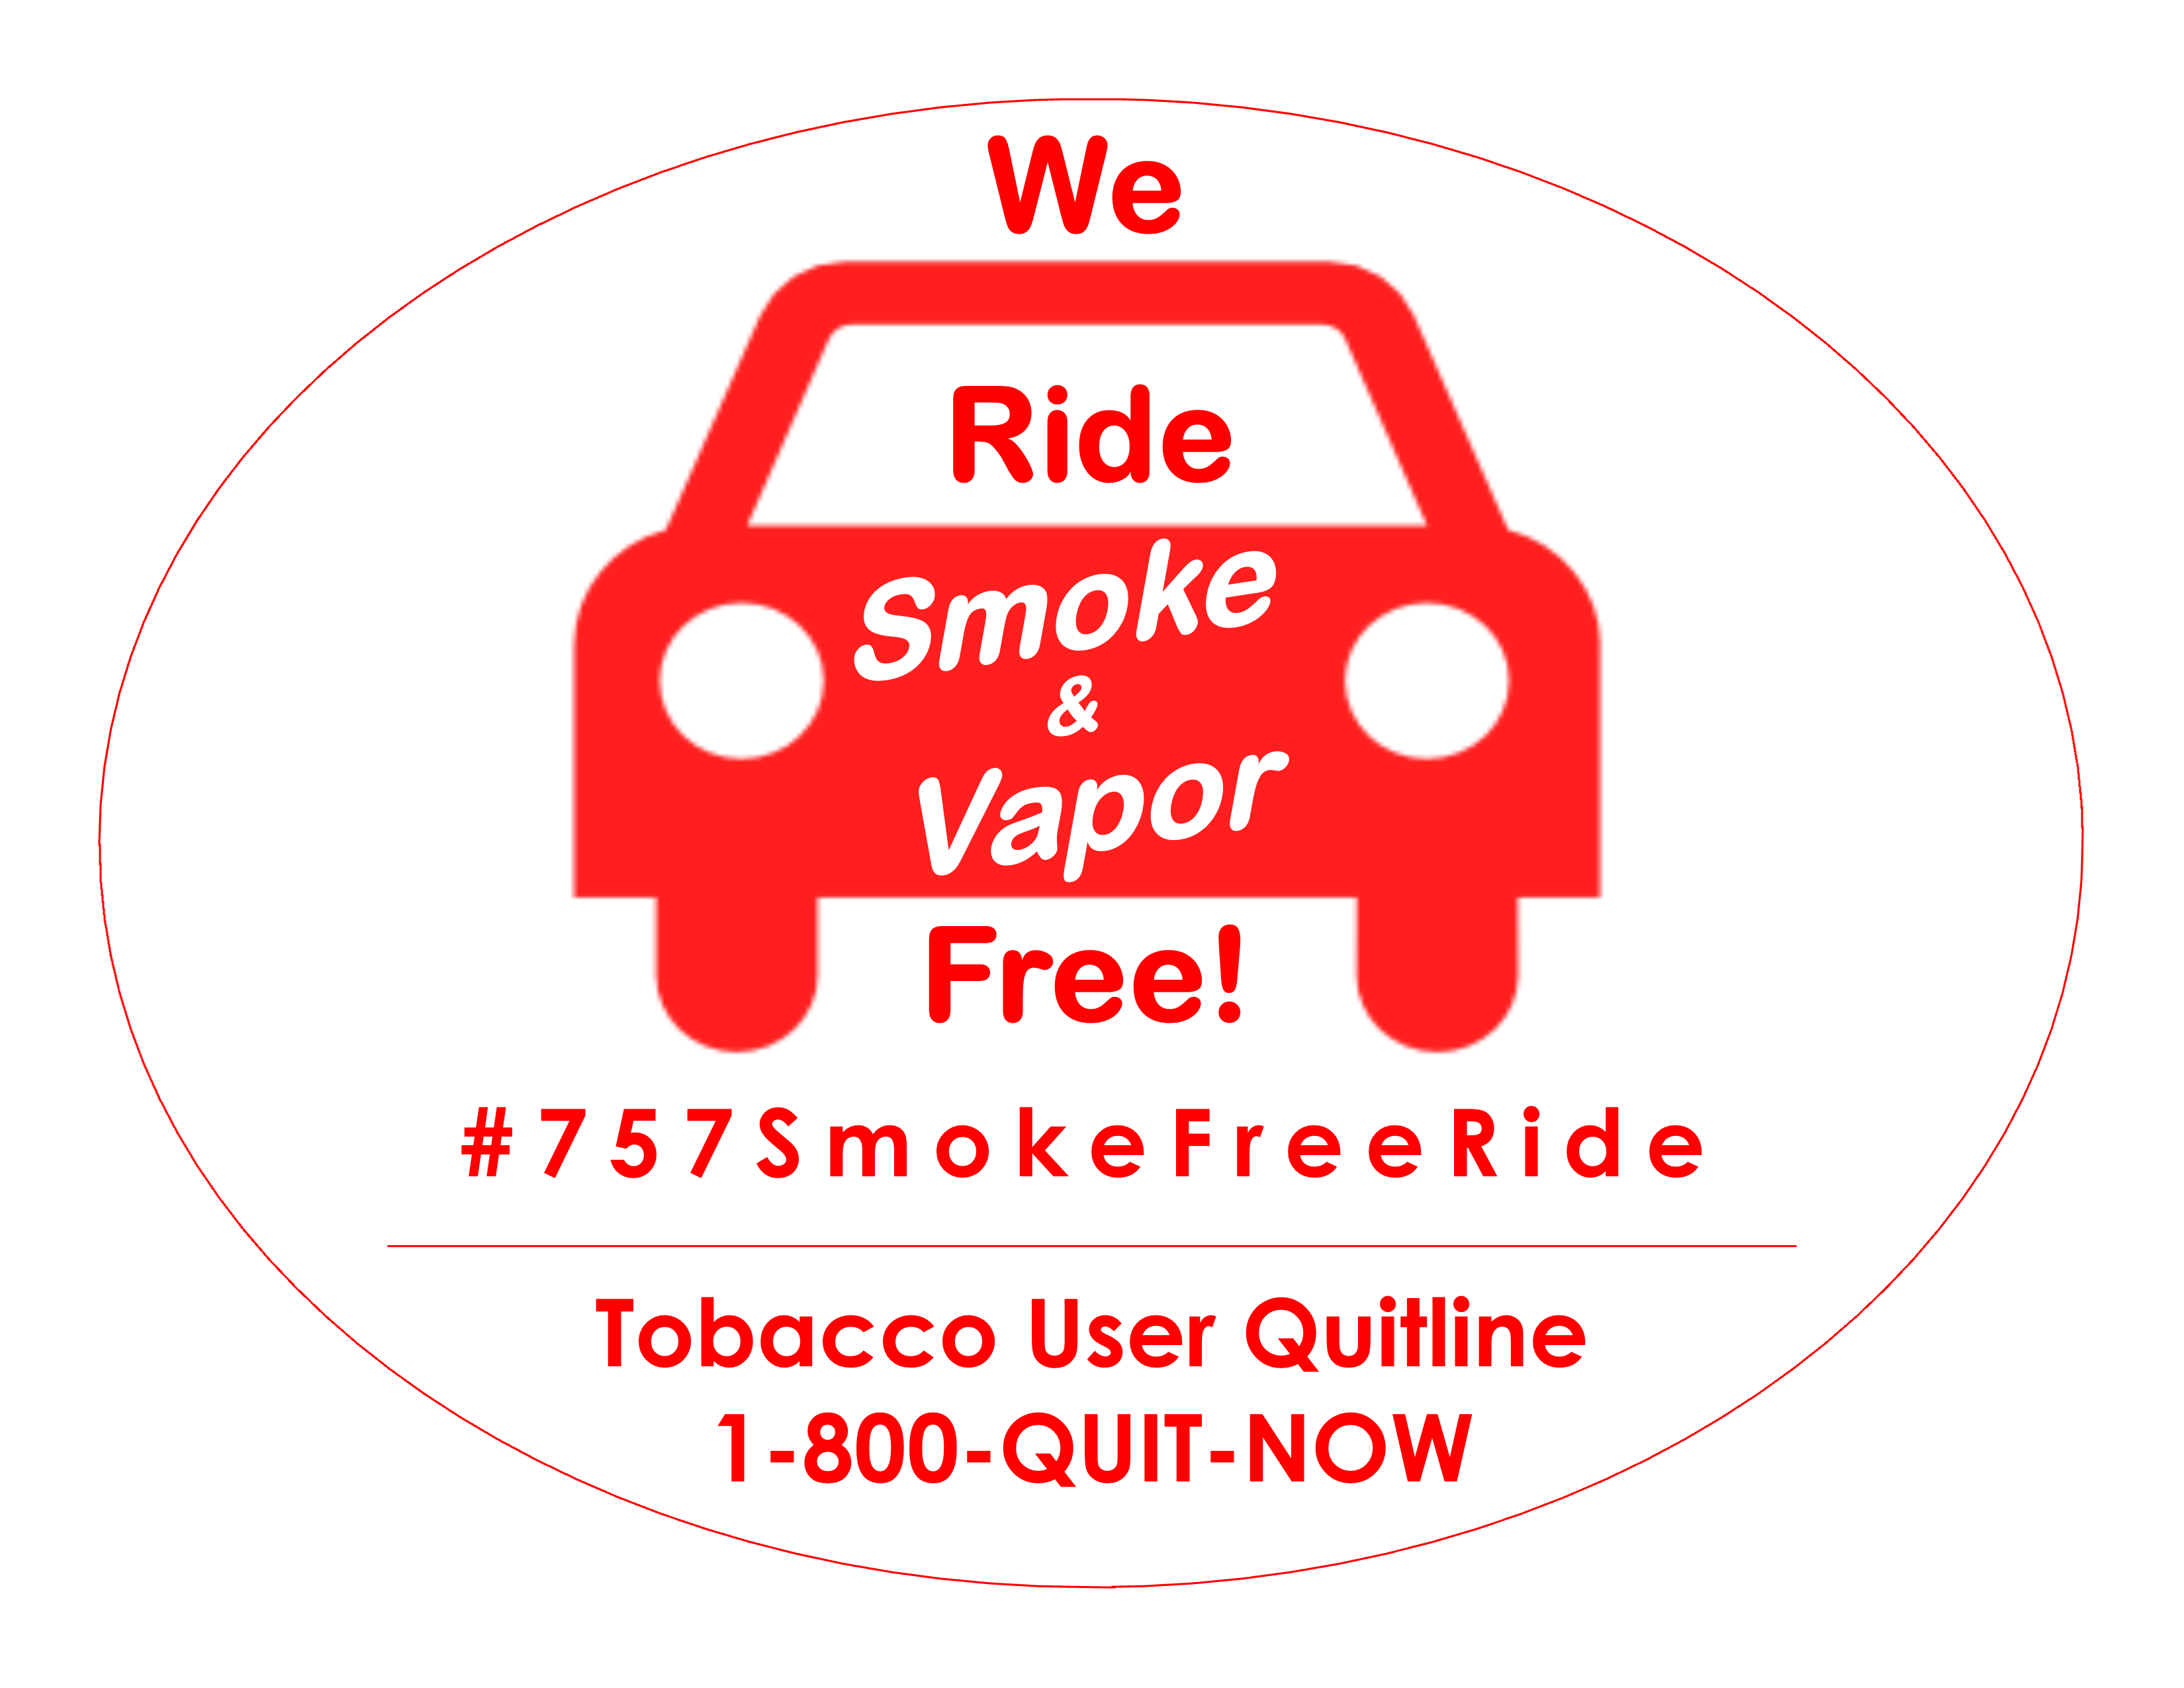 I pledge to protect the young lungs of my community by: <br>• Only allowing children to ride in a car where no one ever smokes or vapes.<br>• Making sure no one ever smokes or vapes in my car. <br>• Sharing the #757SmokeFreeRide message.